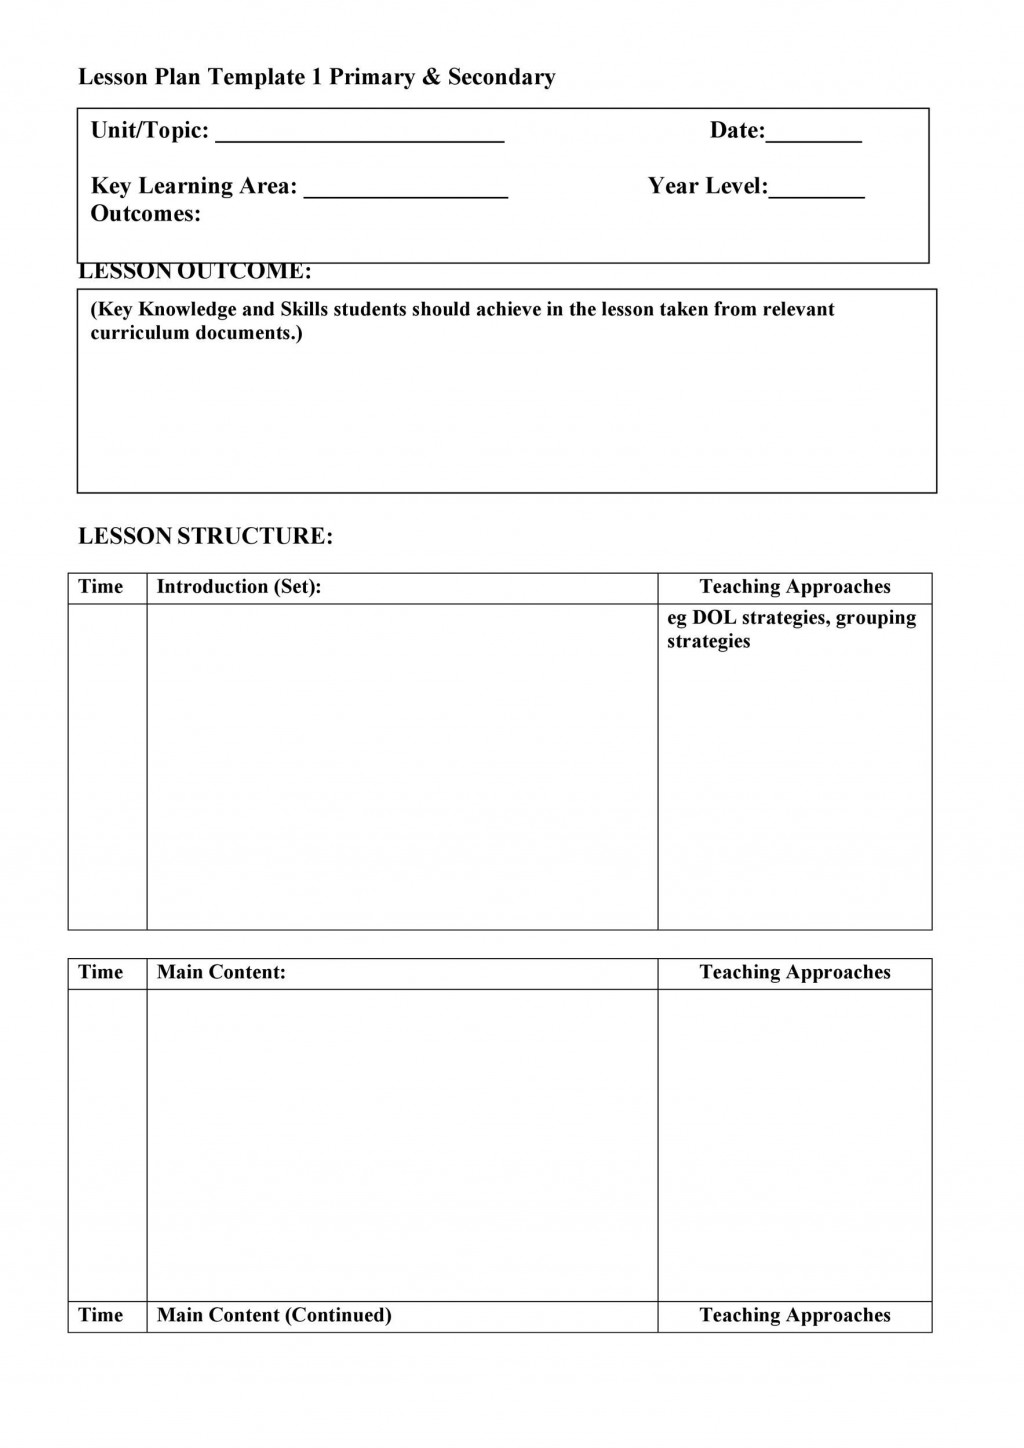 009 Singular Elementary School Lesson Plan Template High Definition  Format Science TeacherLarge